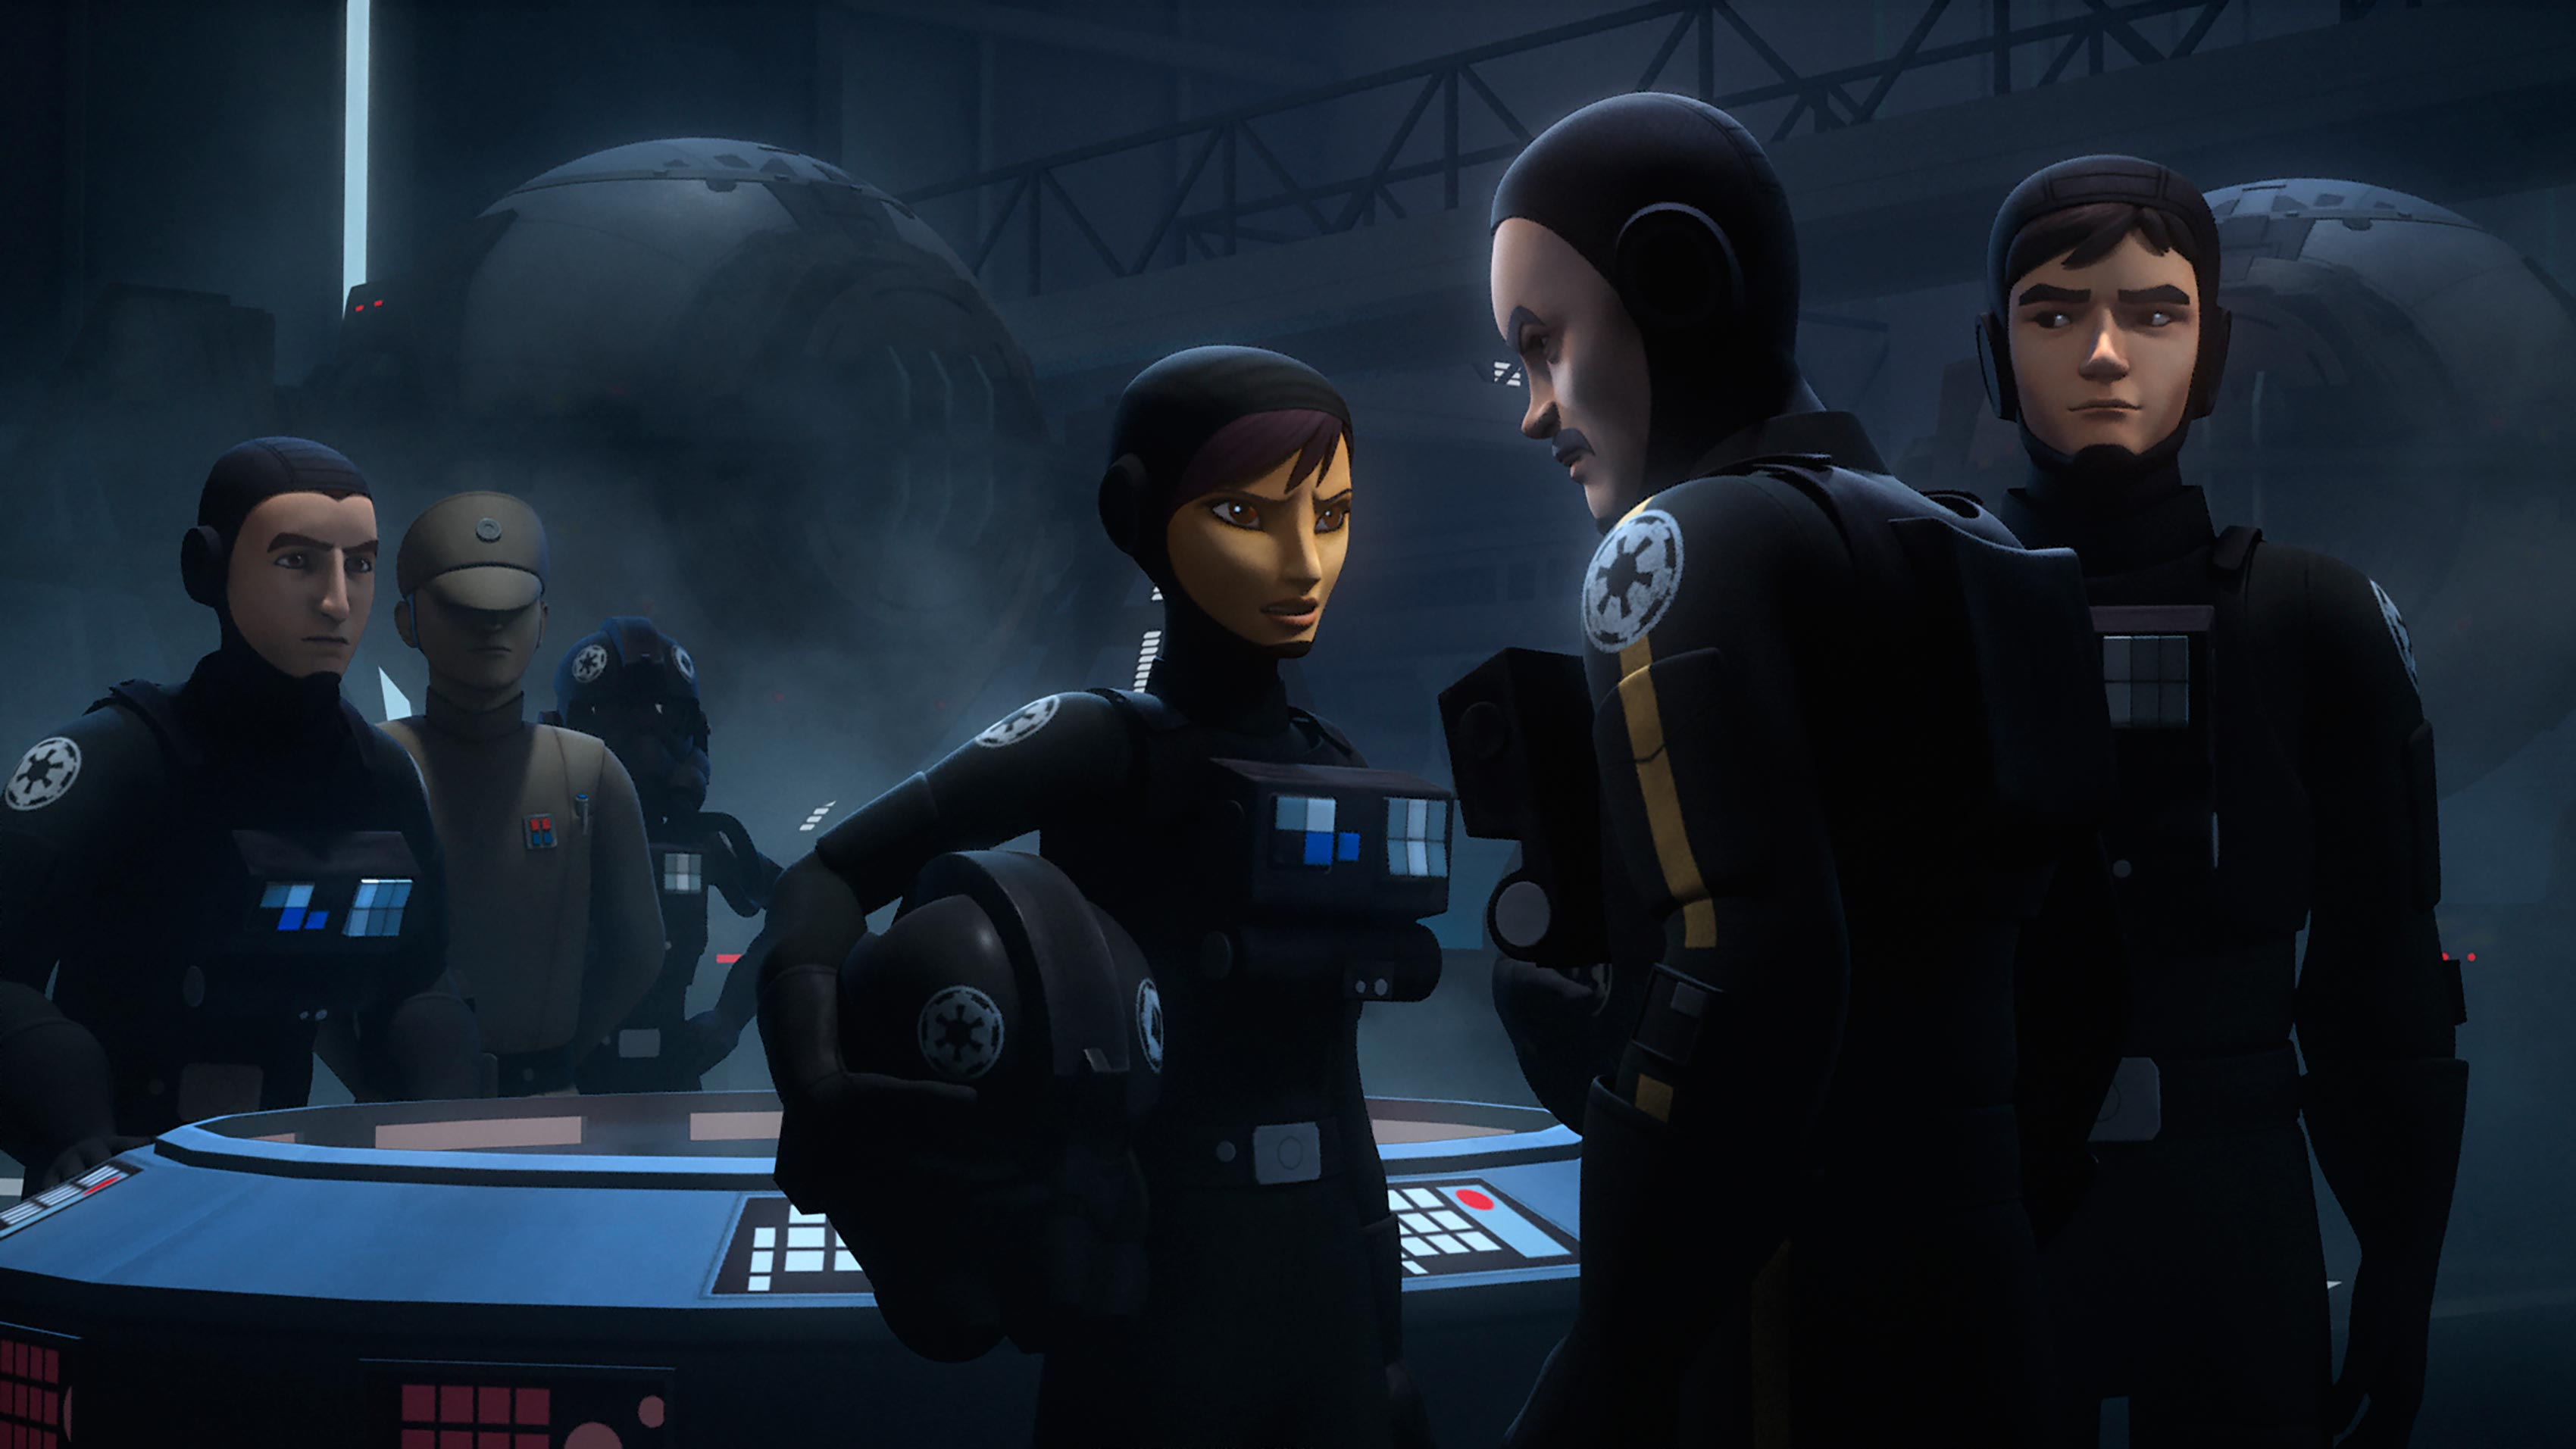 Star Wars Rebels 3x03